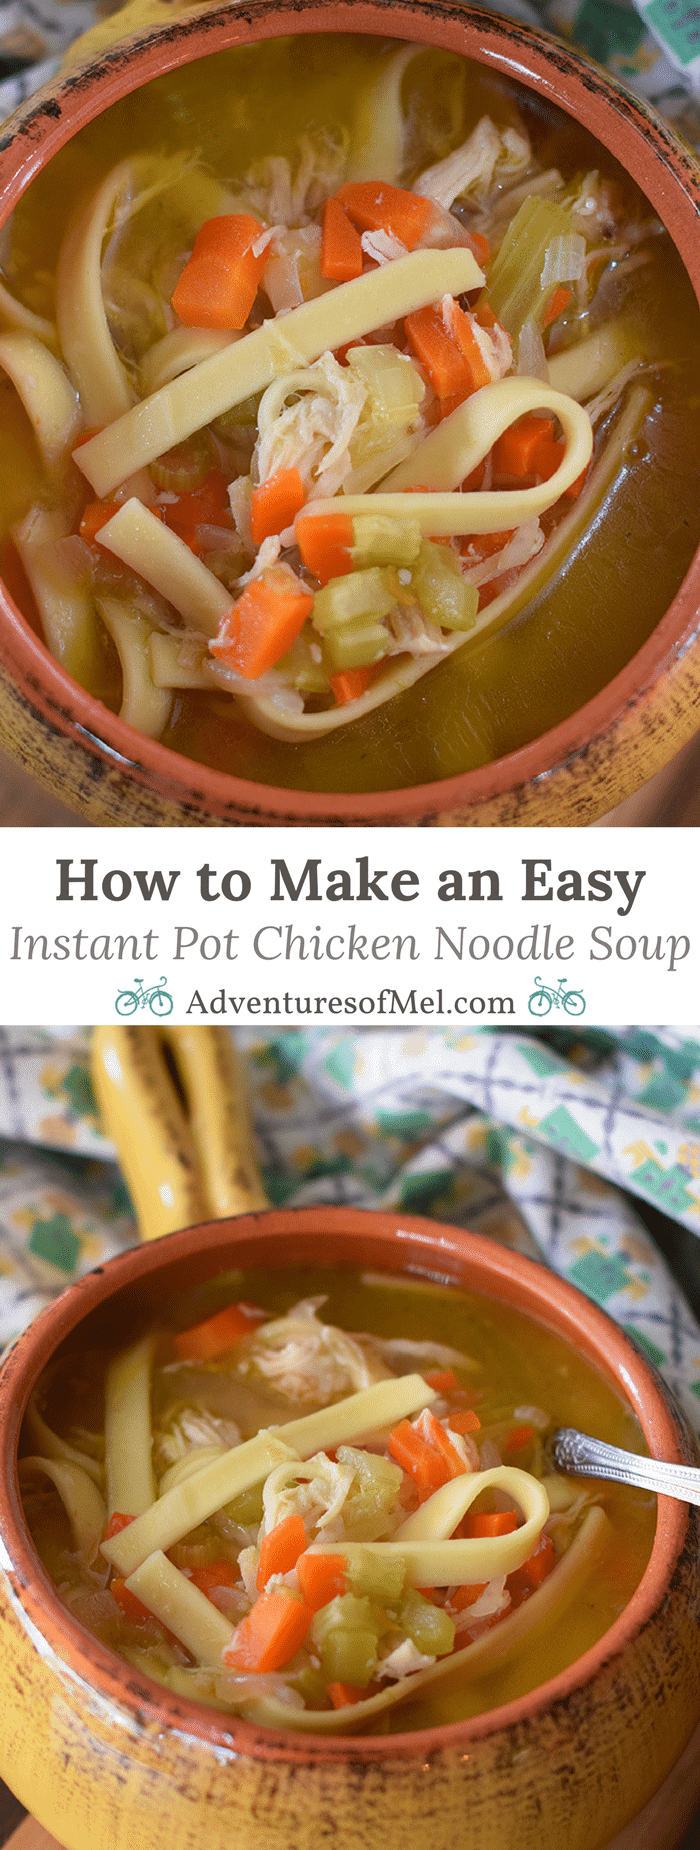 How to make an easy instant pot chicken noodle soup for How to make homemade chicken noodle soup